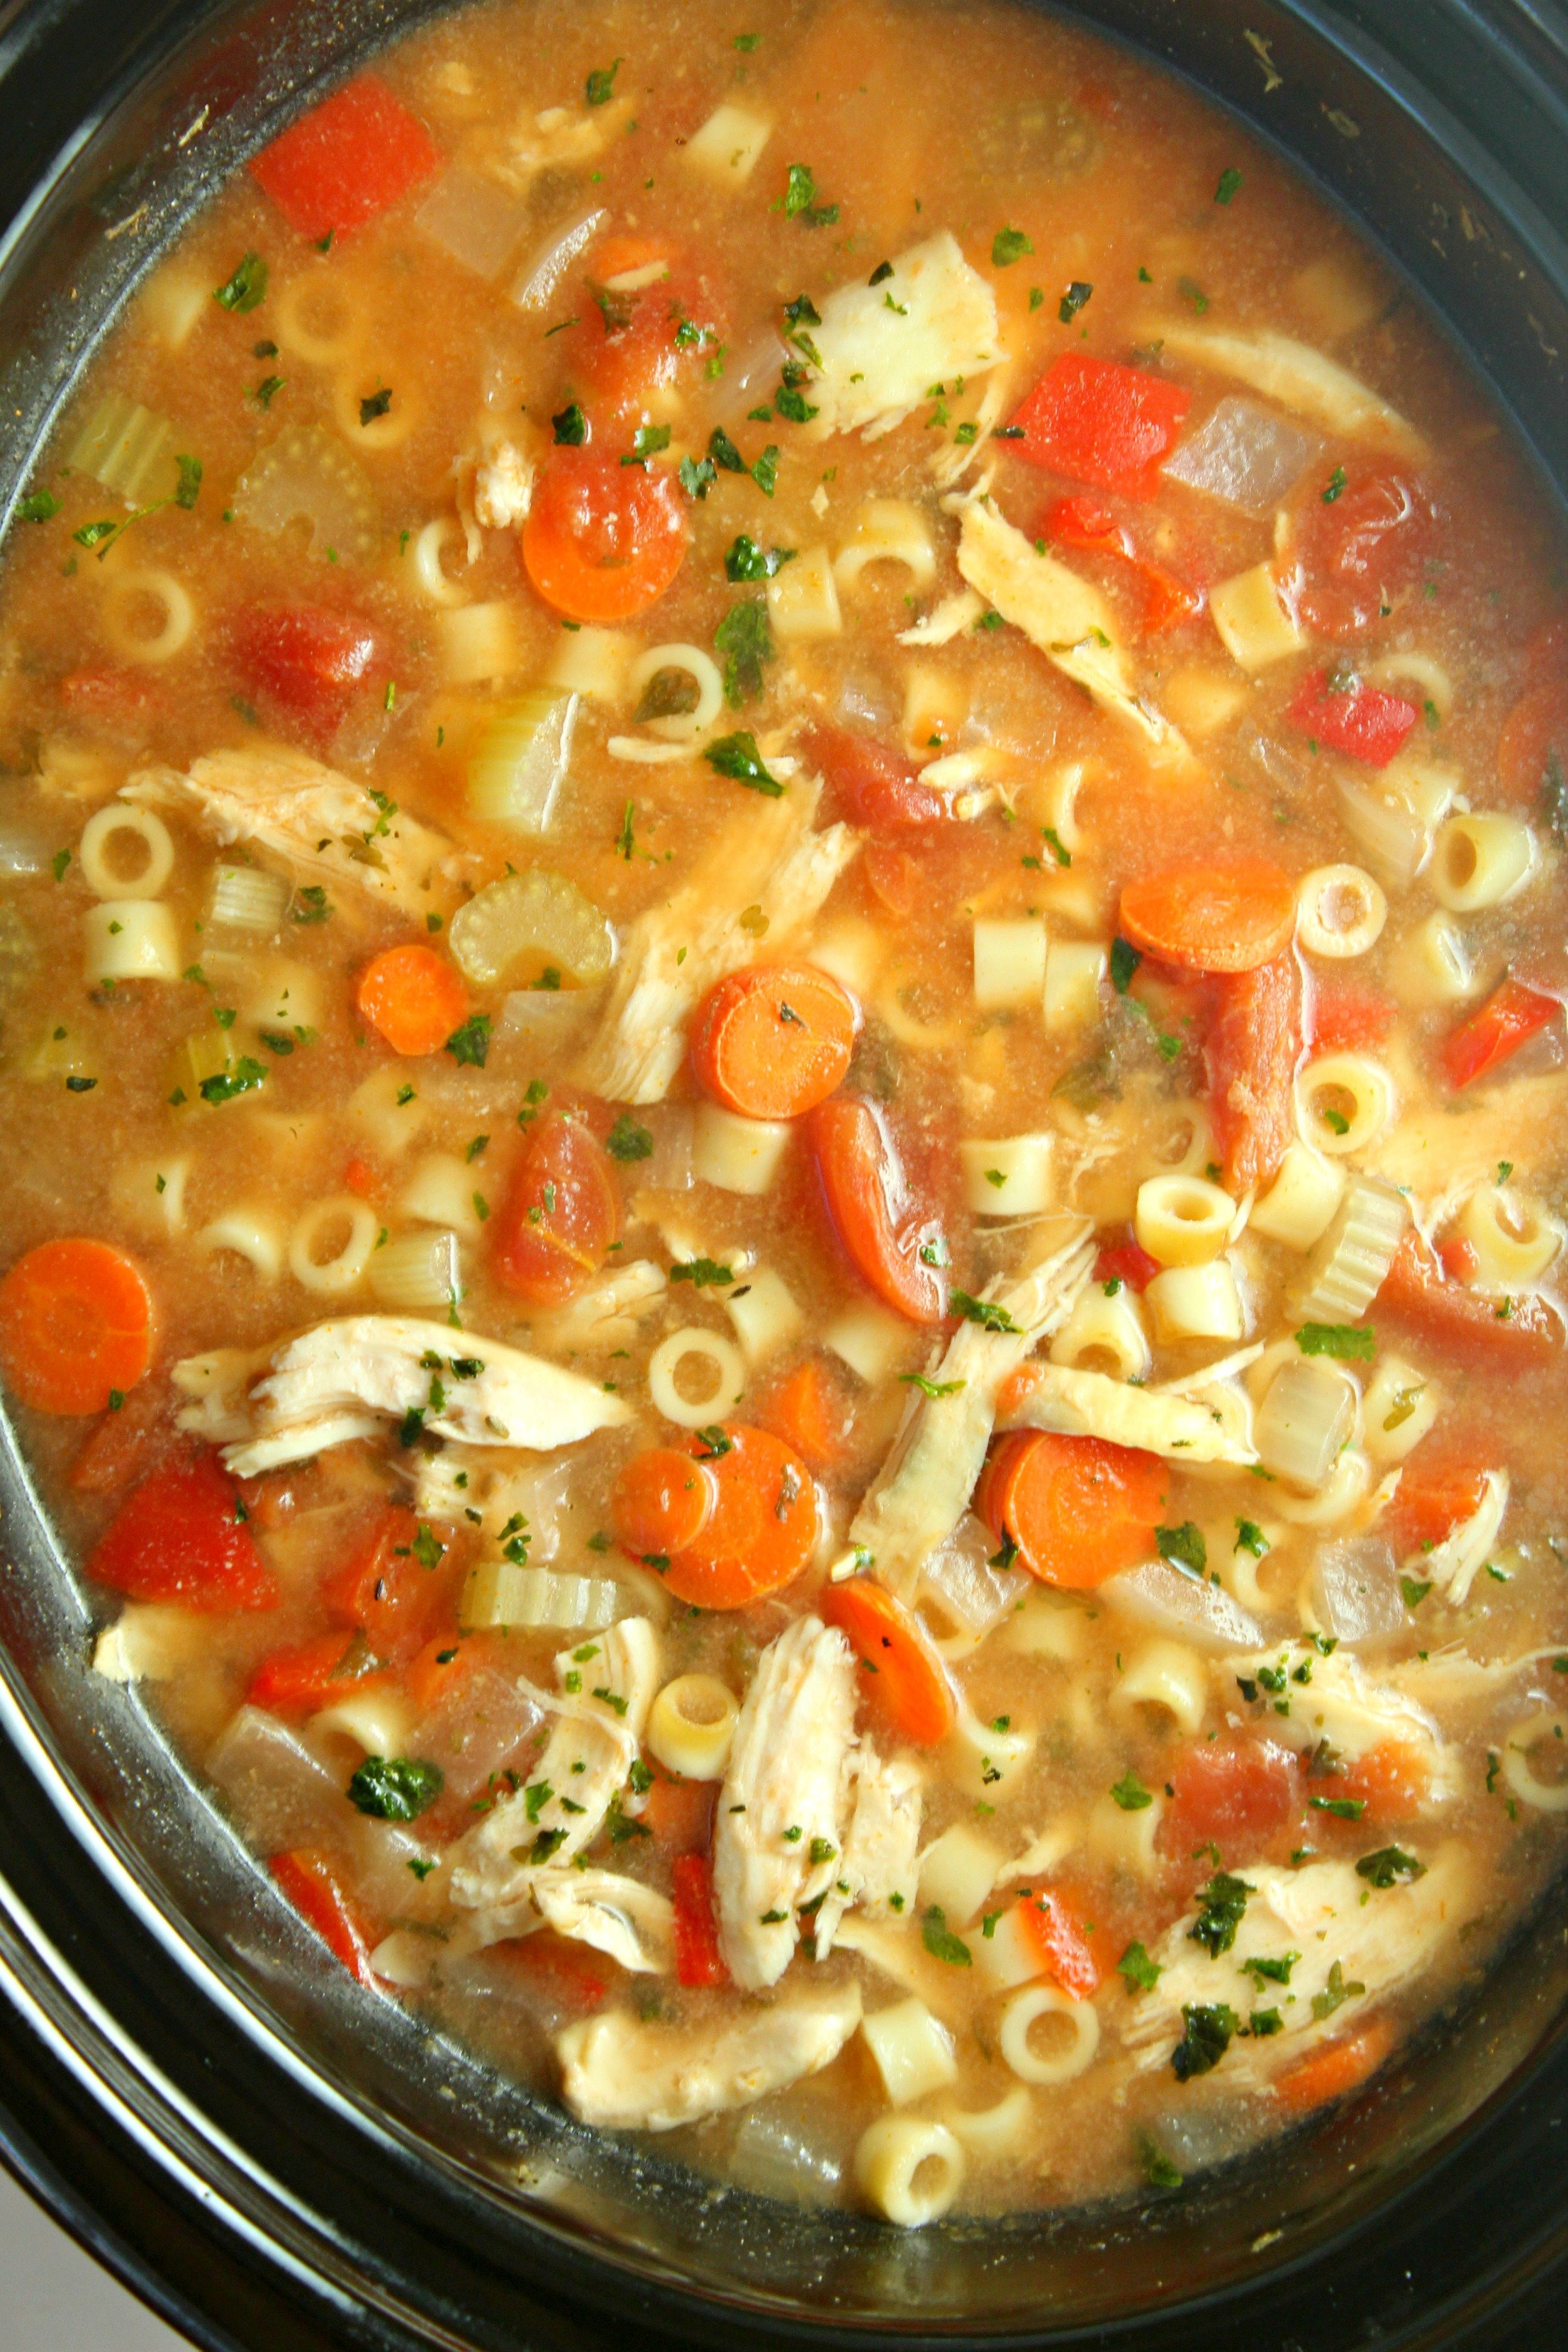 Slow cooker cilian chicken soup